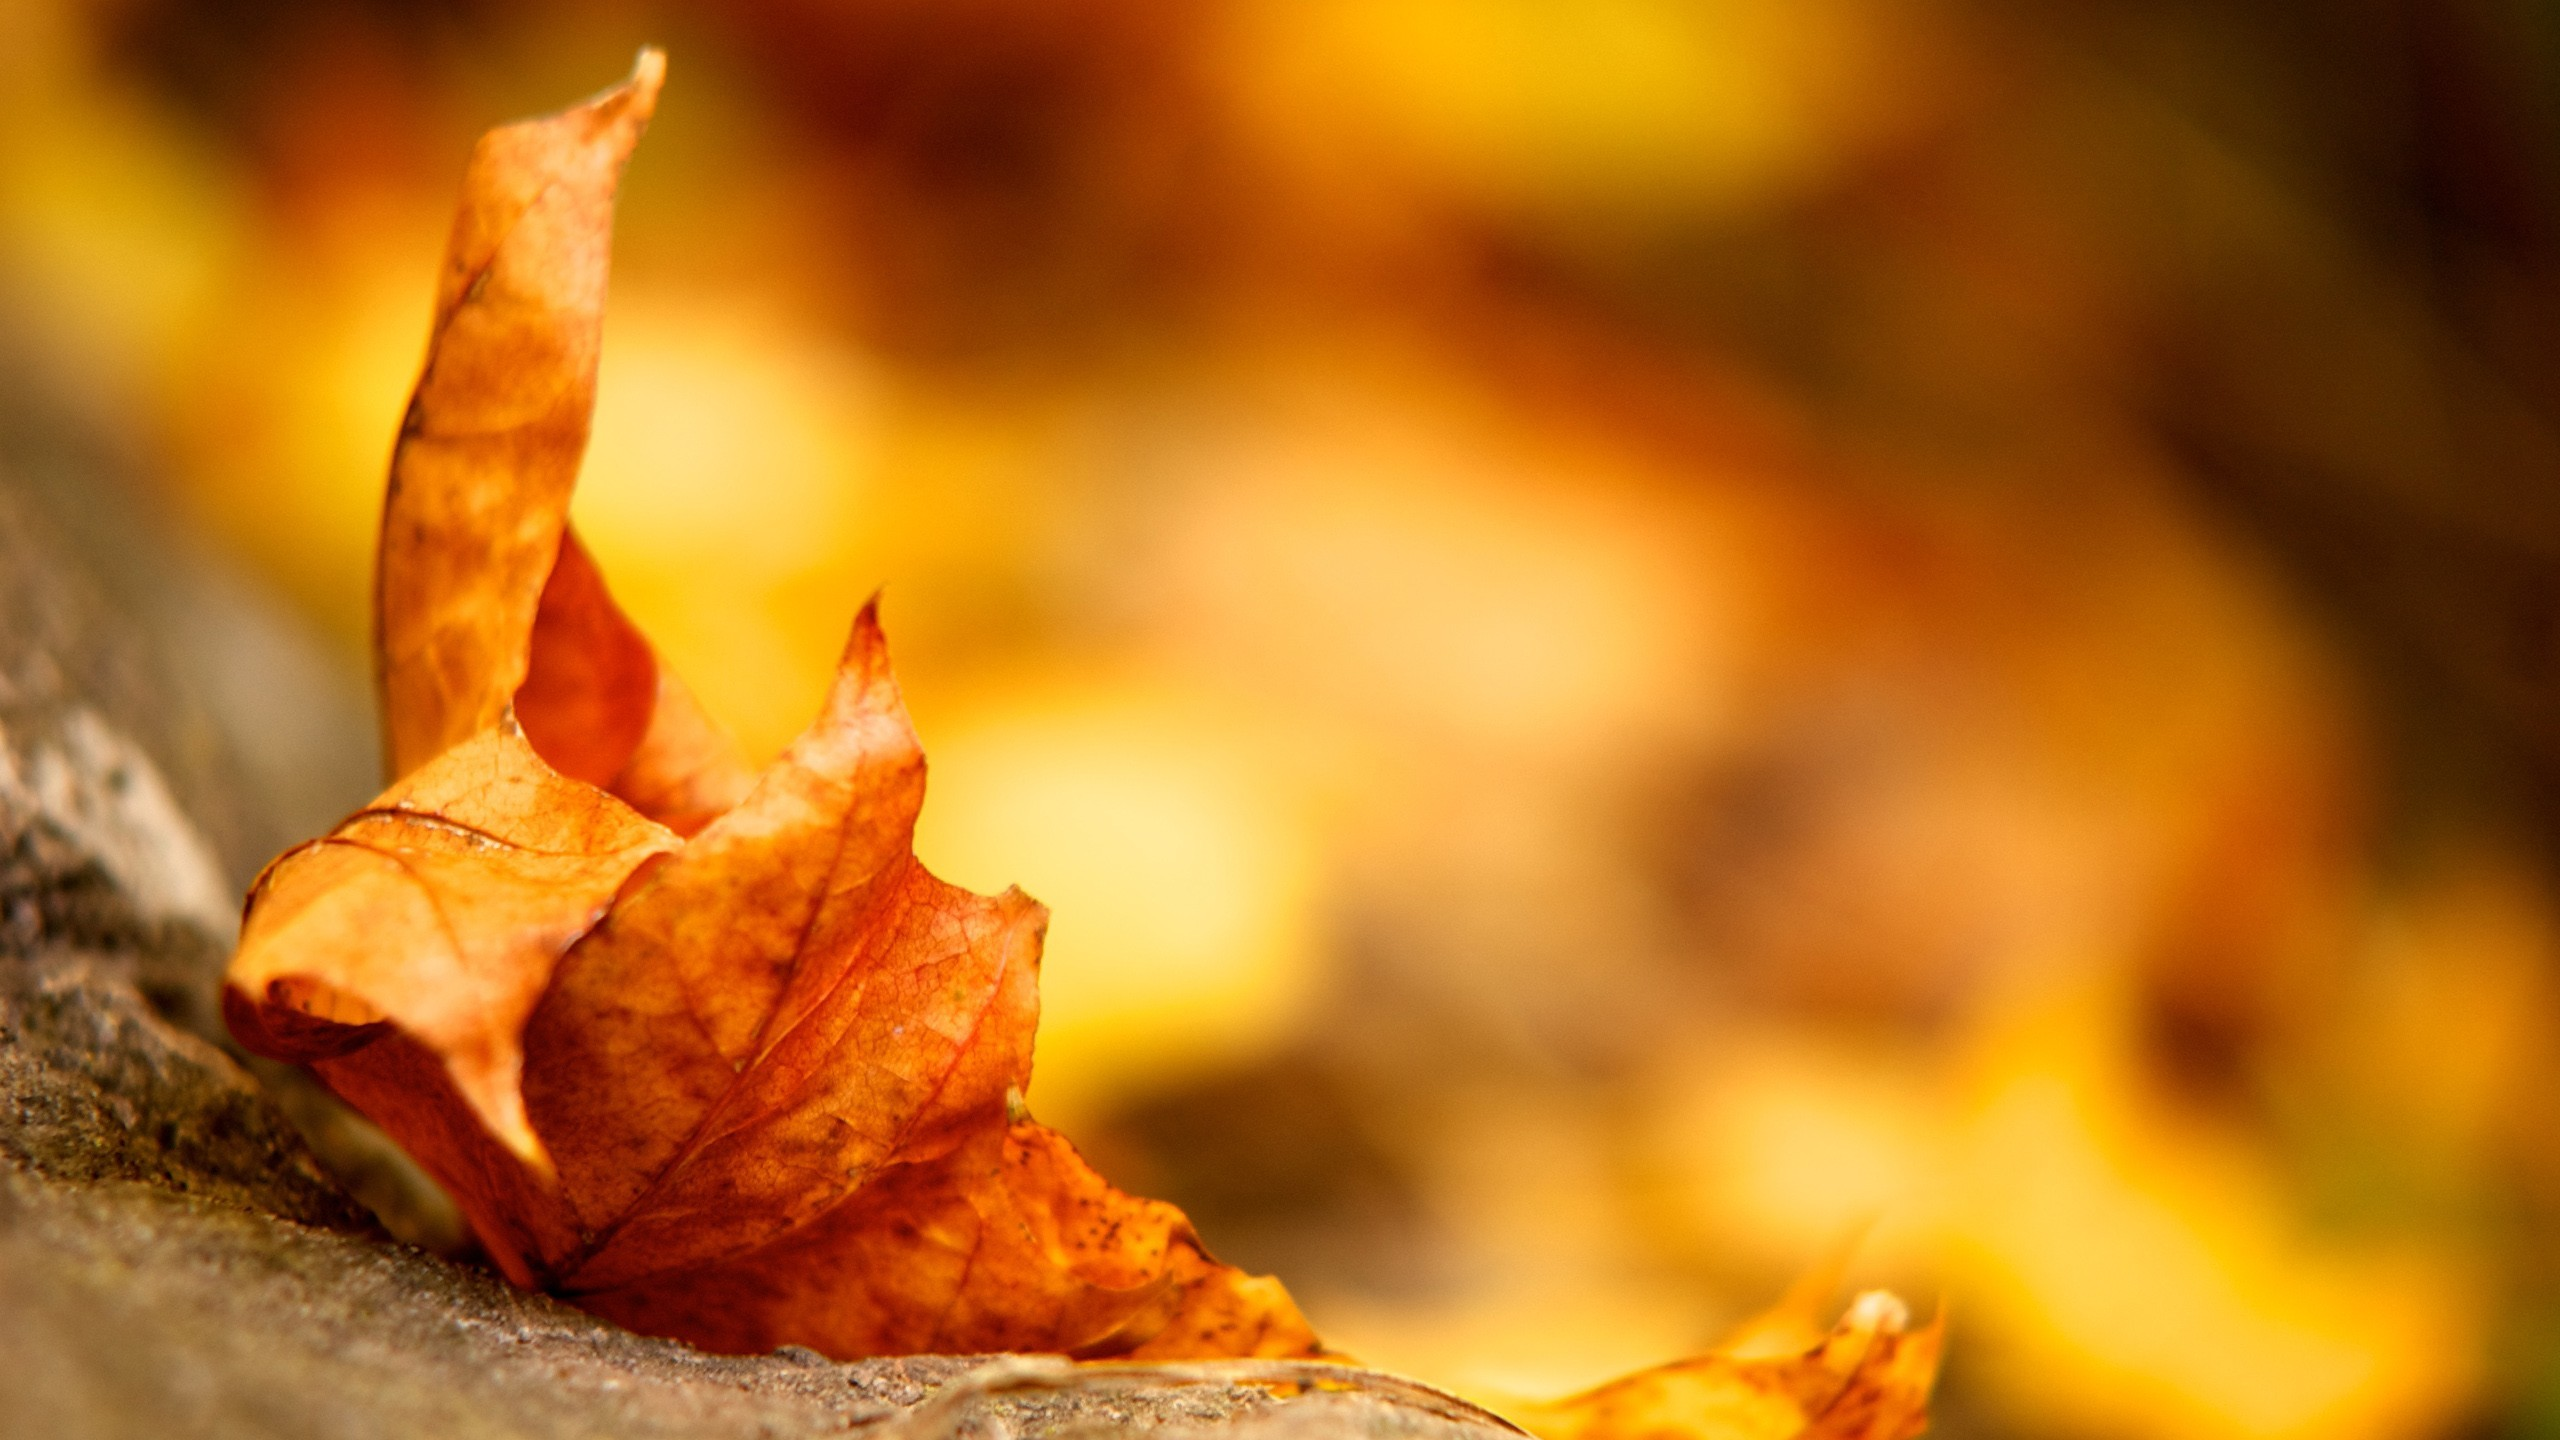 autumn leaves fallen leaves HD Wallpaper